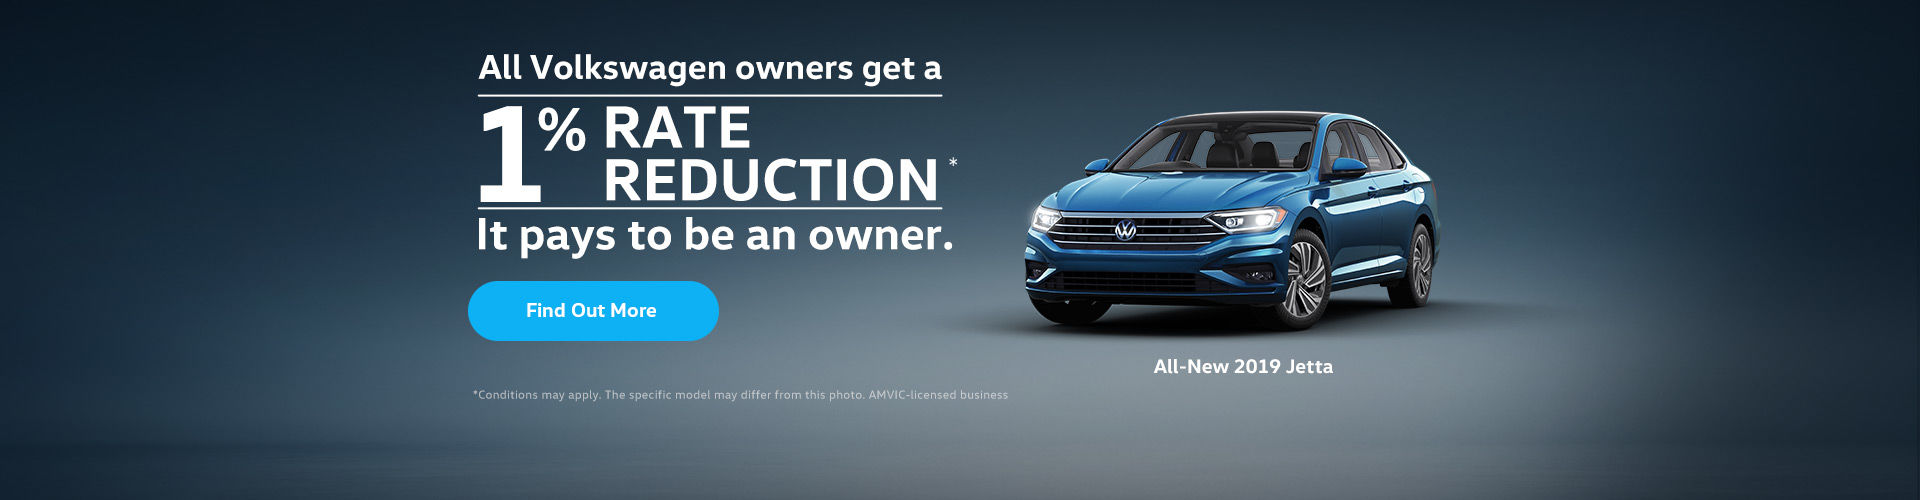 Jetta rate reduction